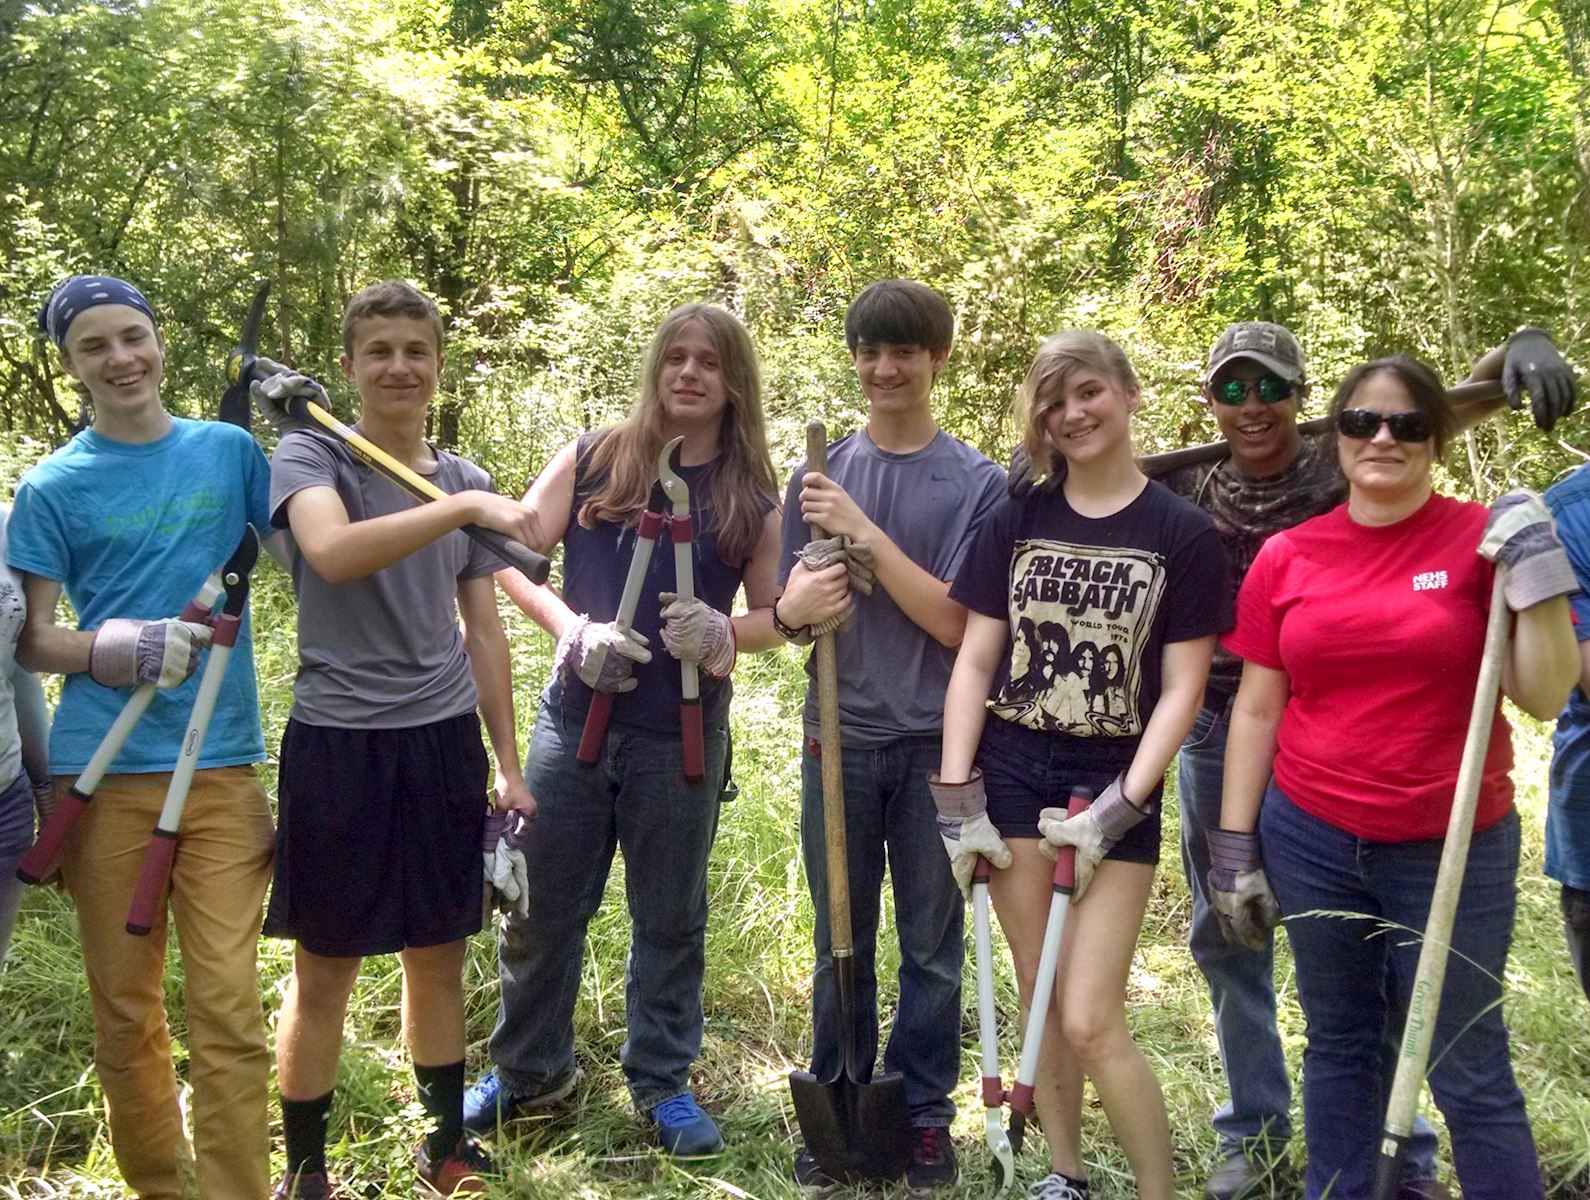 A group of high school aged volunteers pose with yardwork tools, smiling at the camera